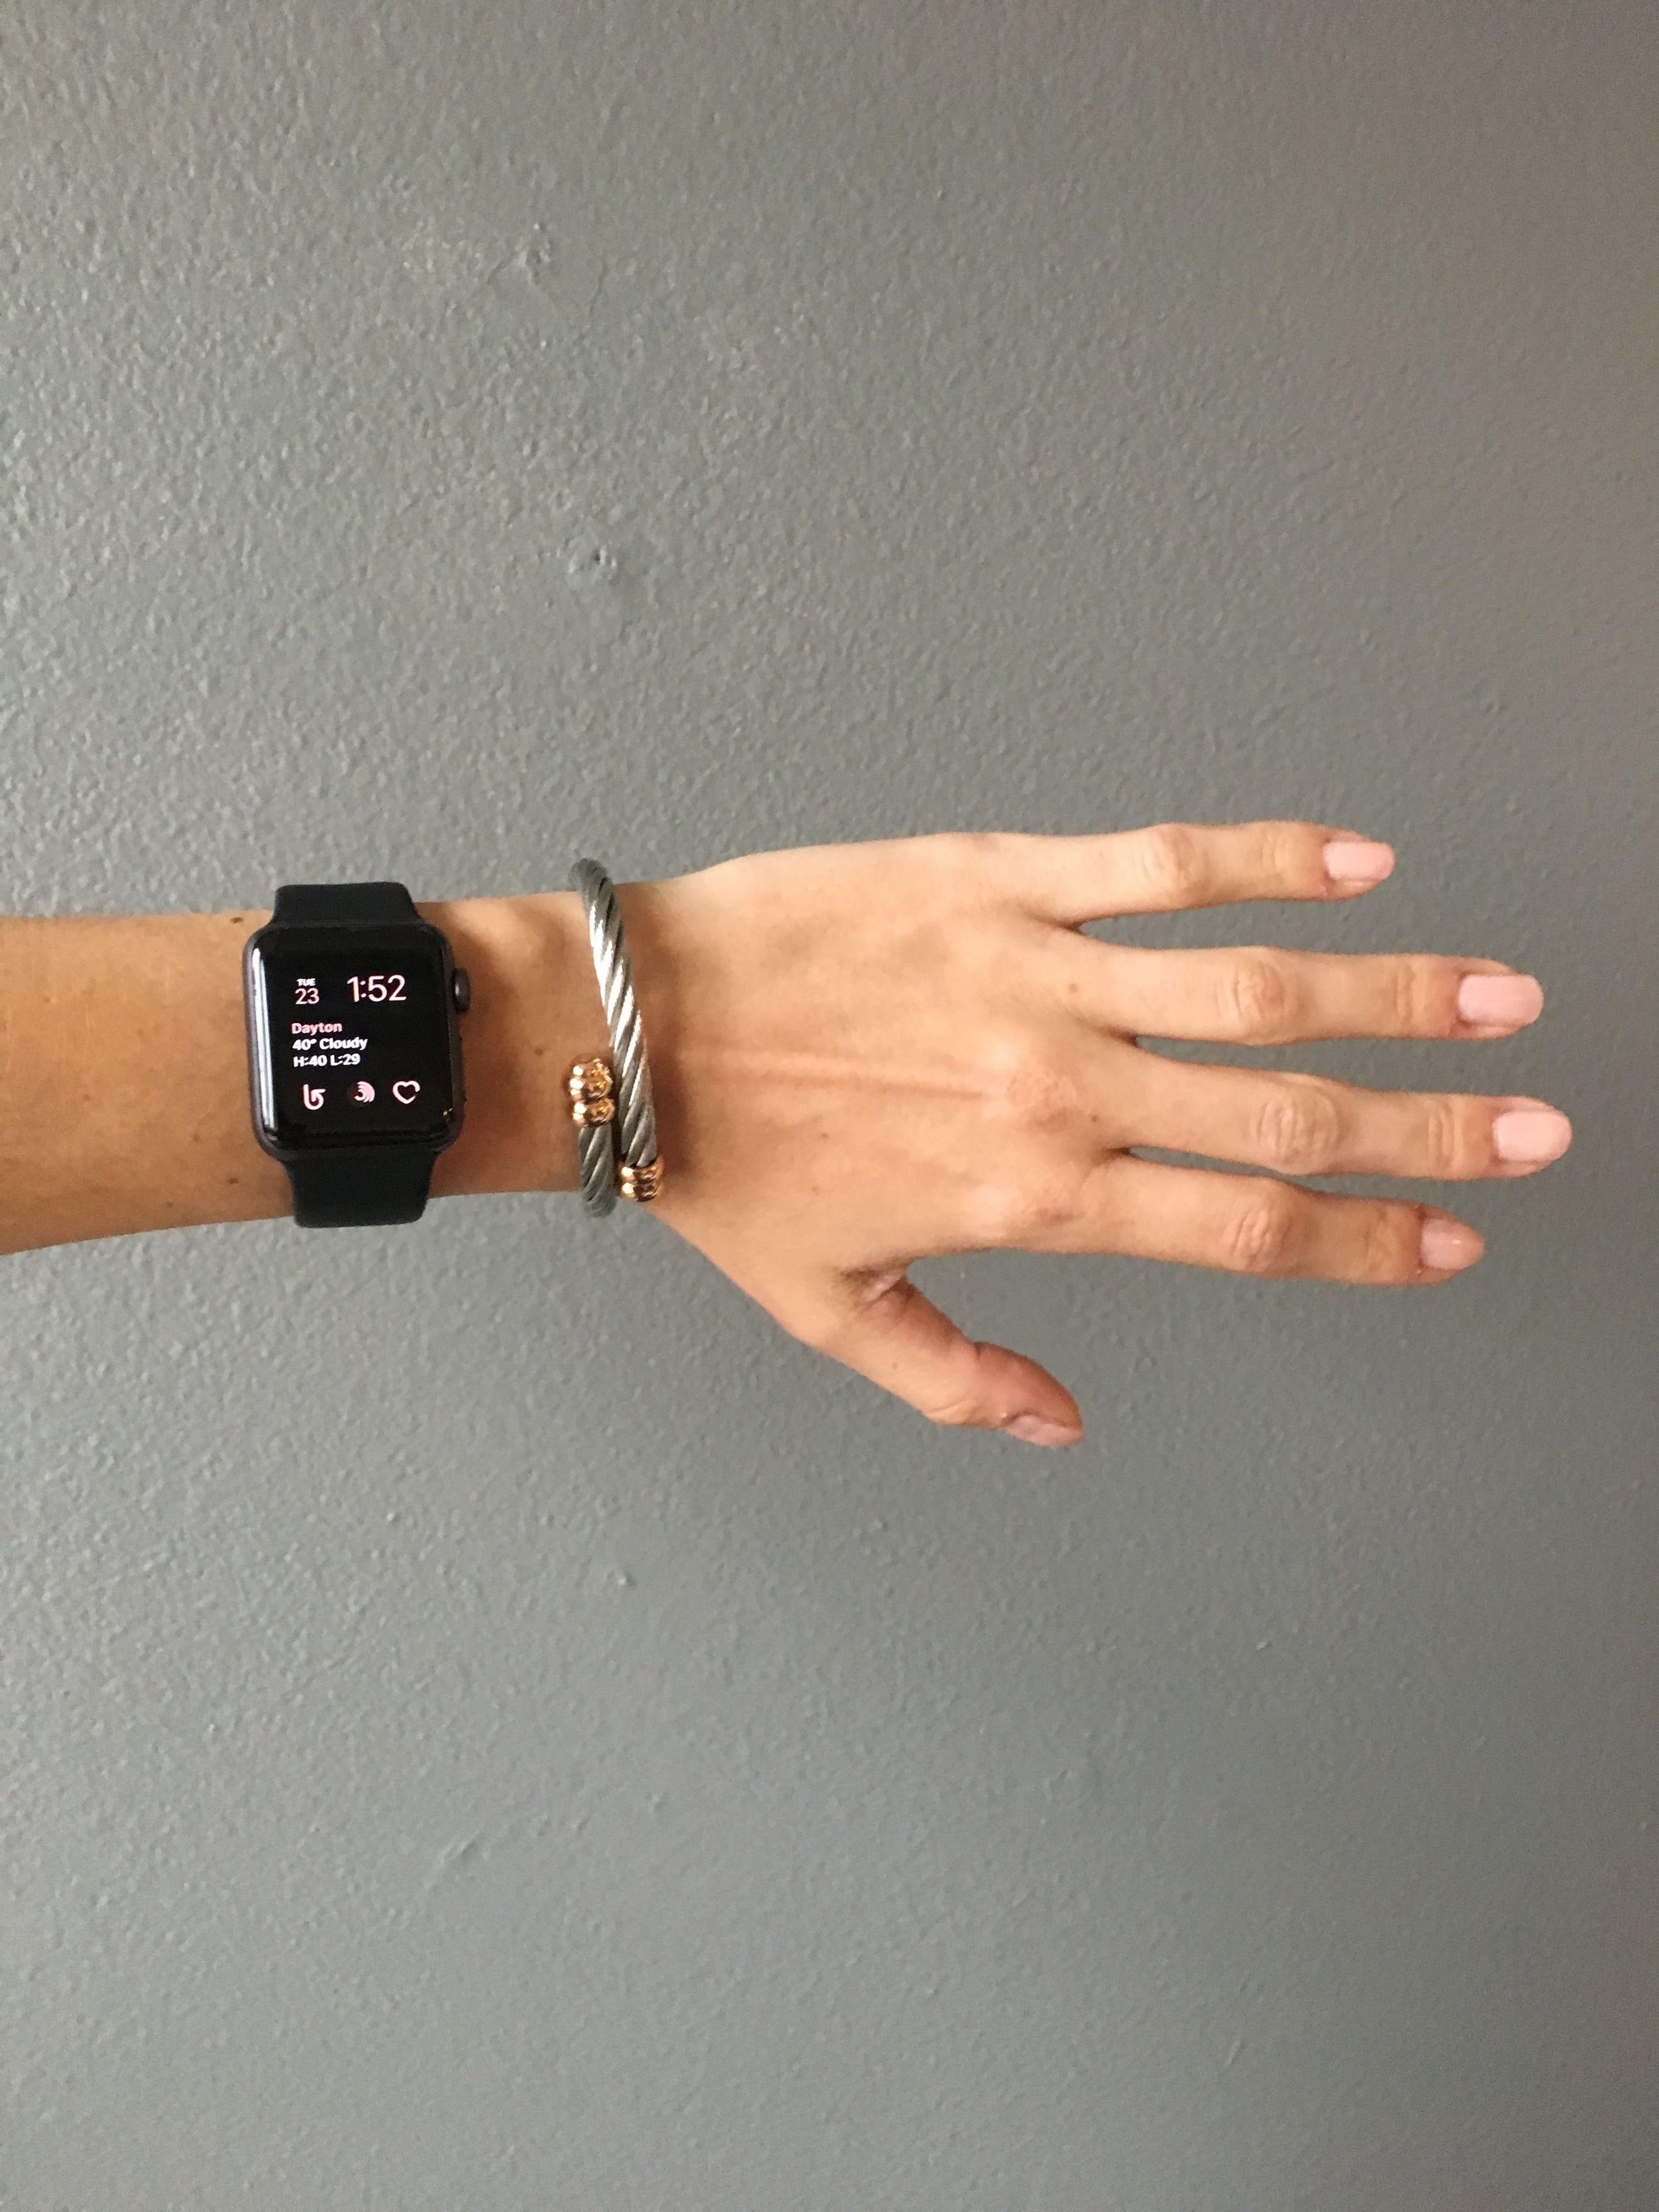 Apple Watch Black Stainless Millennial Pink Opi Nails